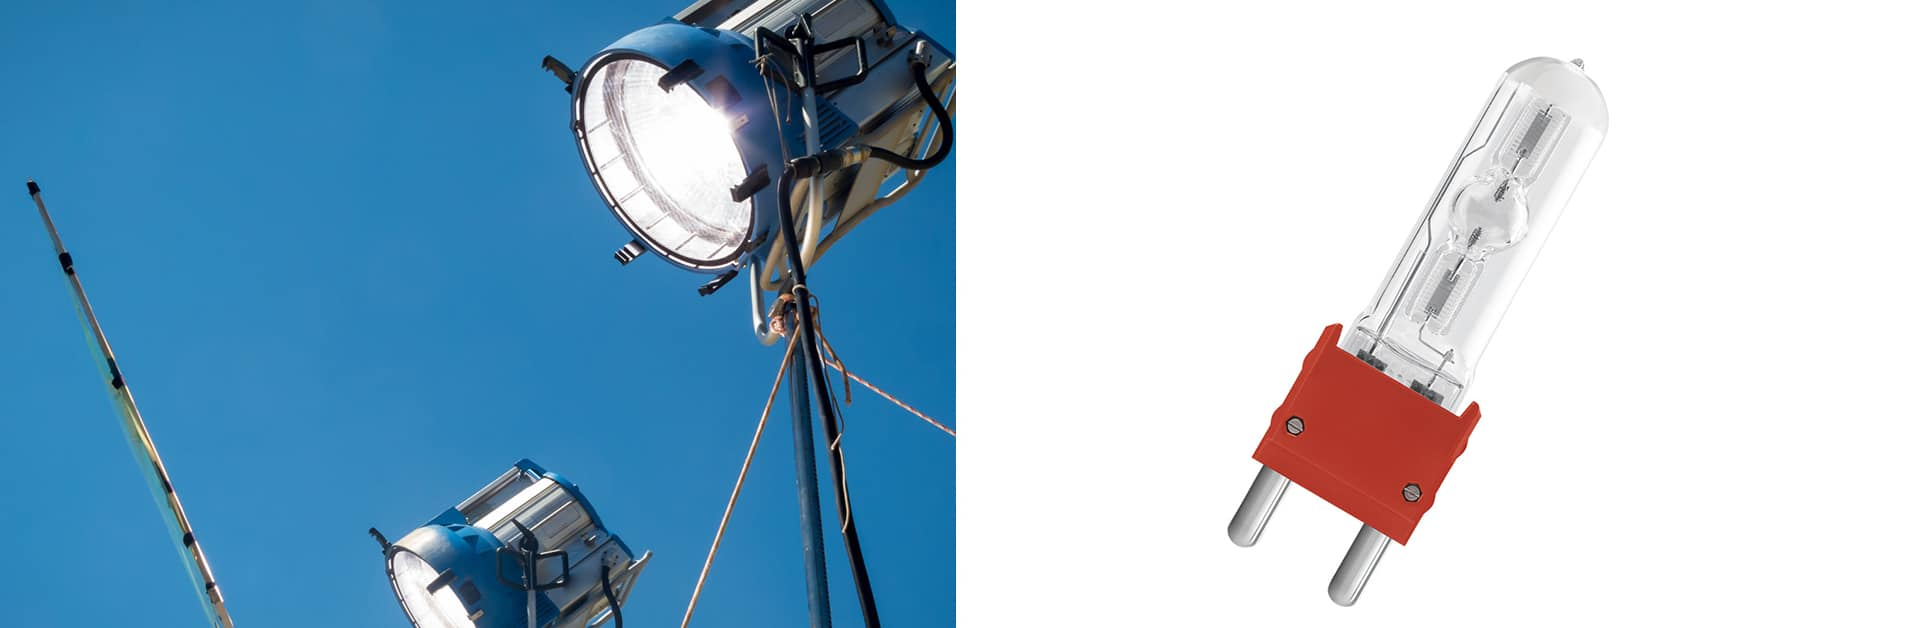 Banner 8 Precise lighting in shooting is what pure water in human life. OSRAM HMI® Lights for Film/ TV/OTT shooting